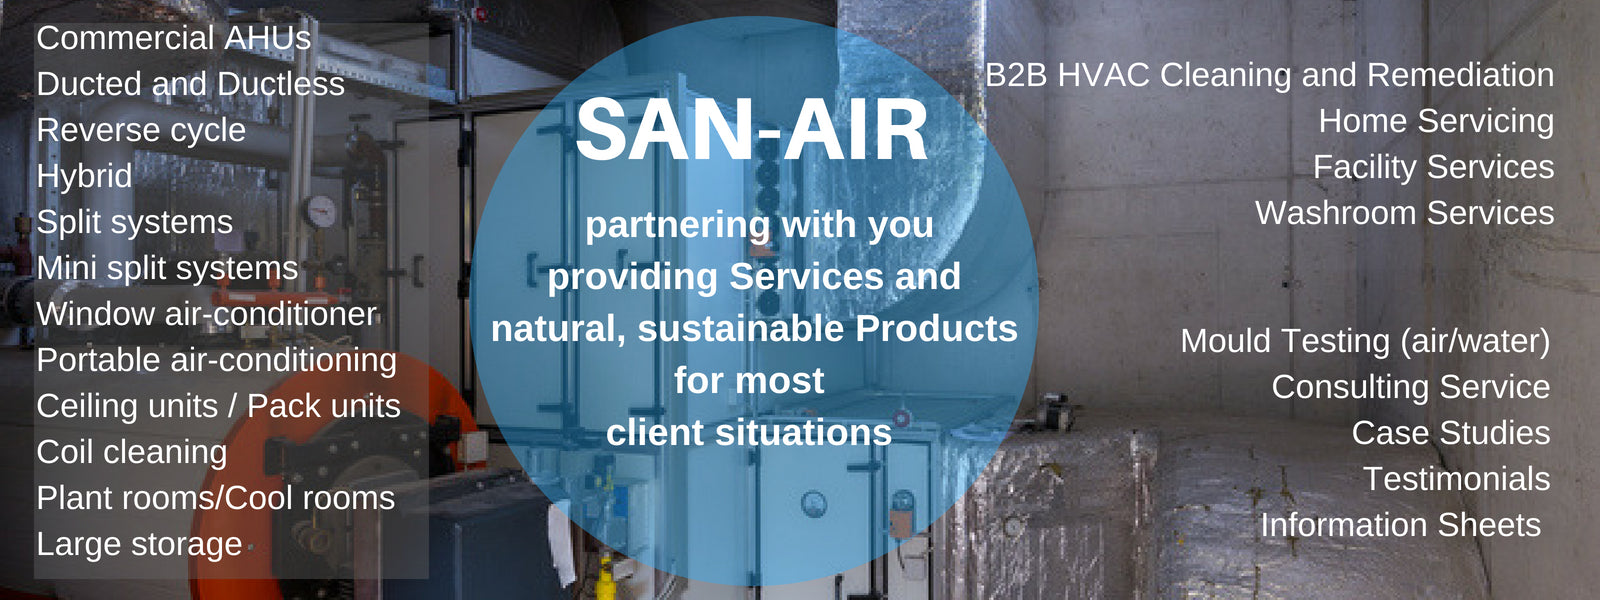 SAN-AIR is for your Business